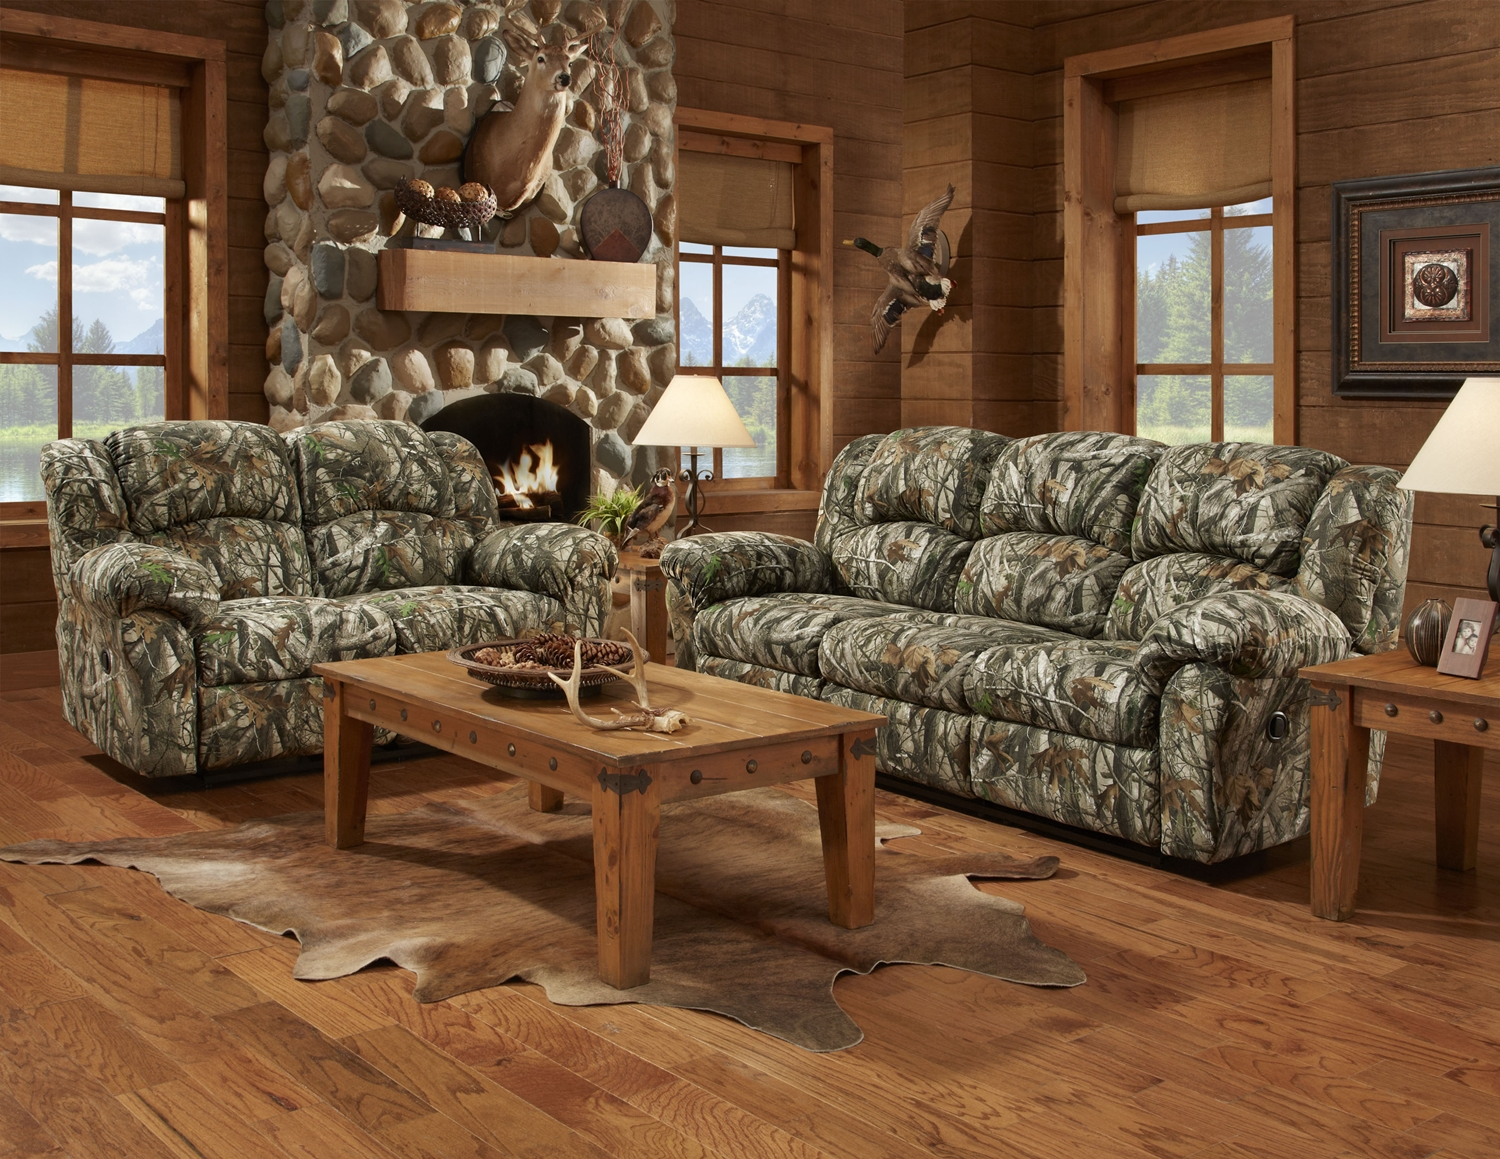 Mossy Oak Camouflage Reclining Motion Sofa & Loveseat Hunting Living Room  Furniture Set - Mossy Oak Camouflage Reclining Motion Sofa Loveseat Camo Hunting